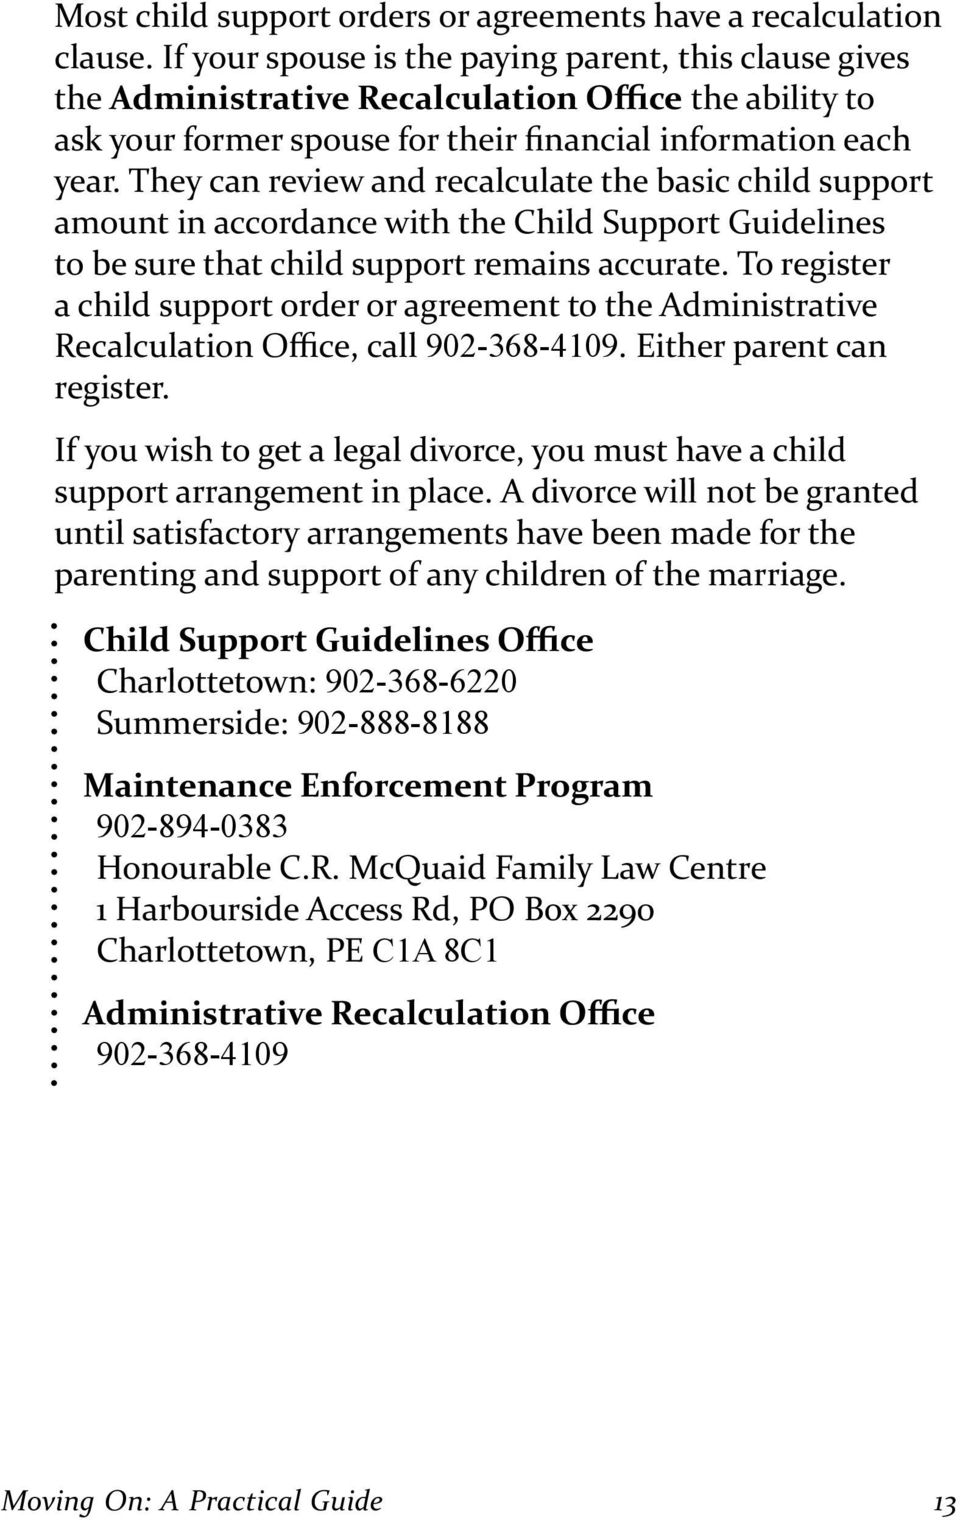 To register a child support order or agreement to the Administrative 902-368-4109. Either parent can register. If you wish to get a legal divorce, you must have a child support arrangement in place.